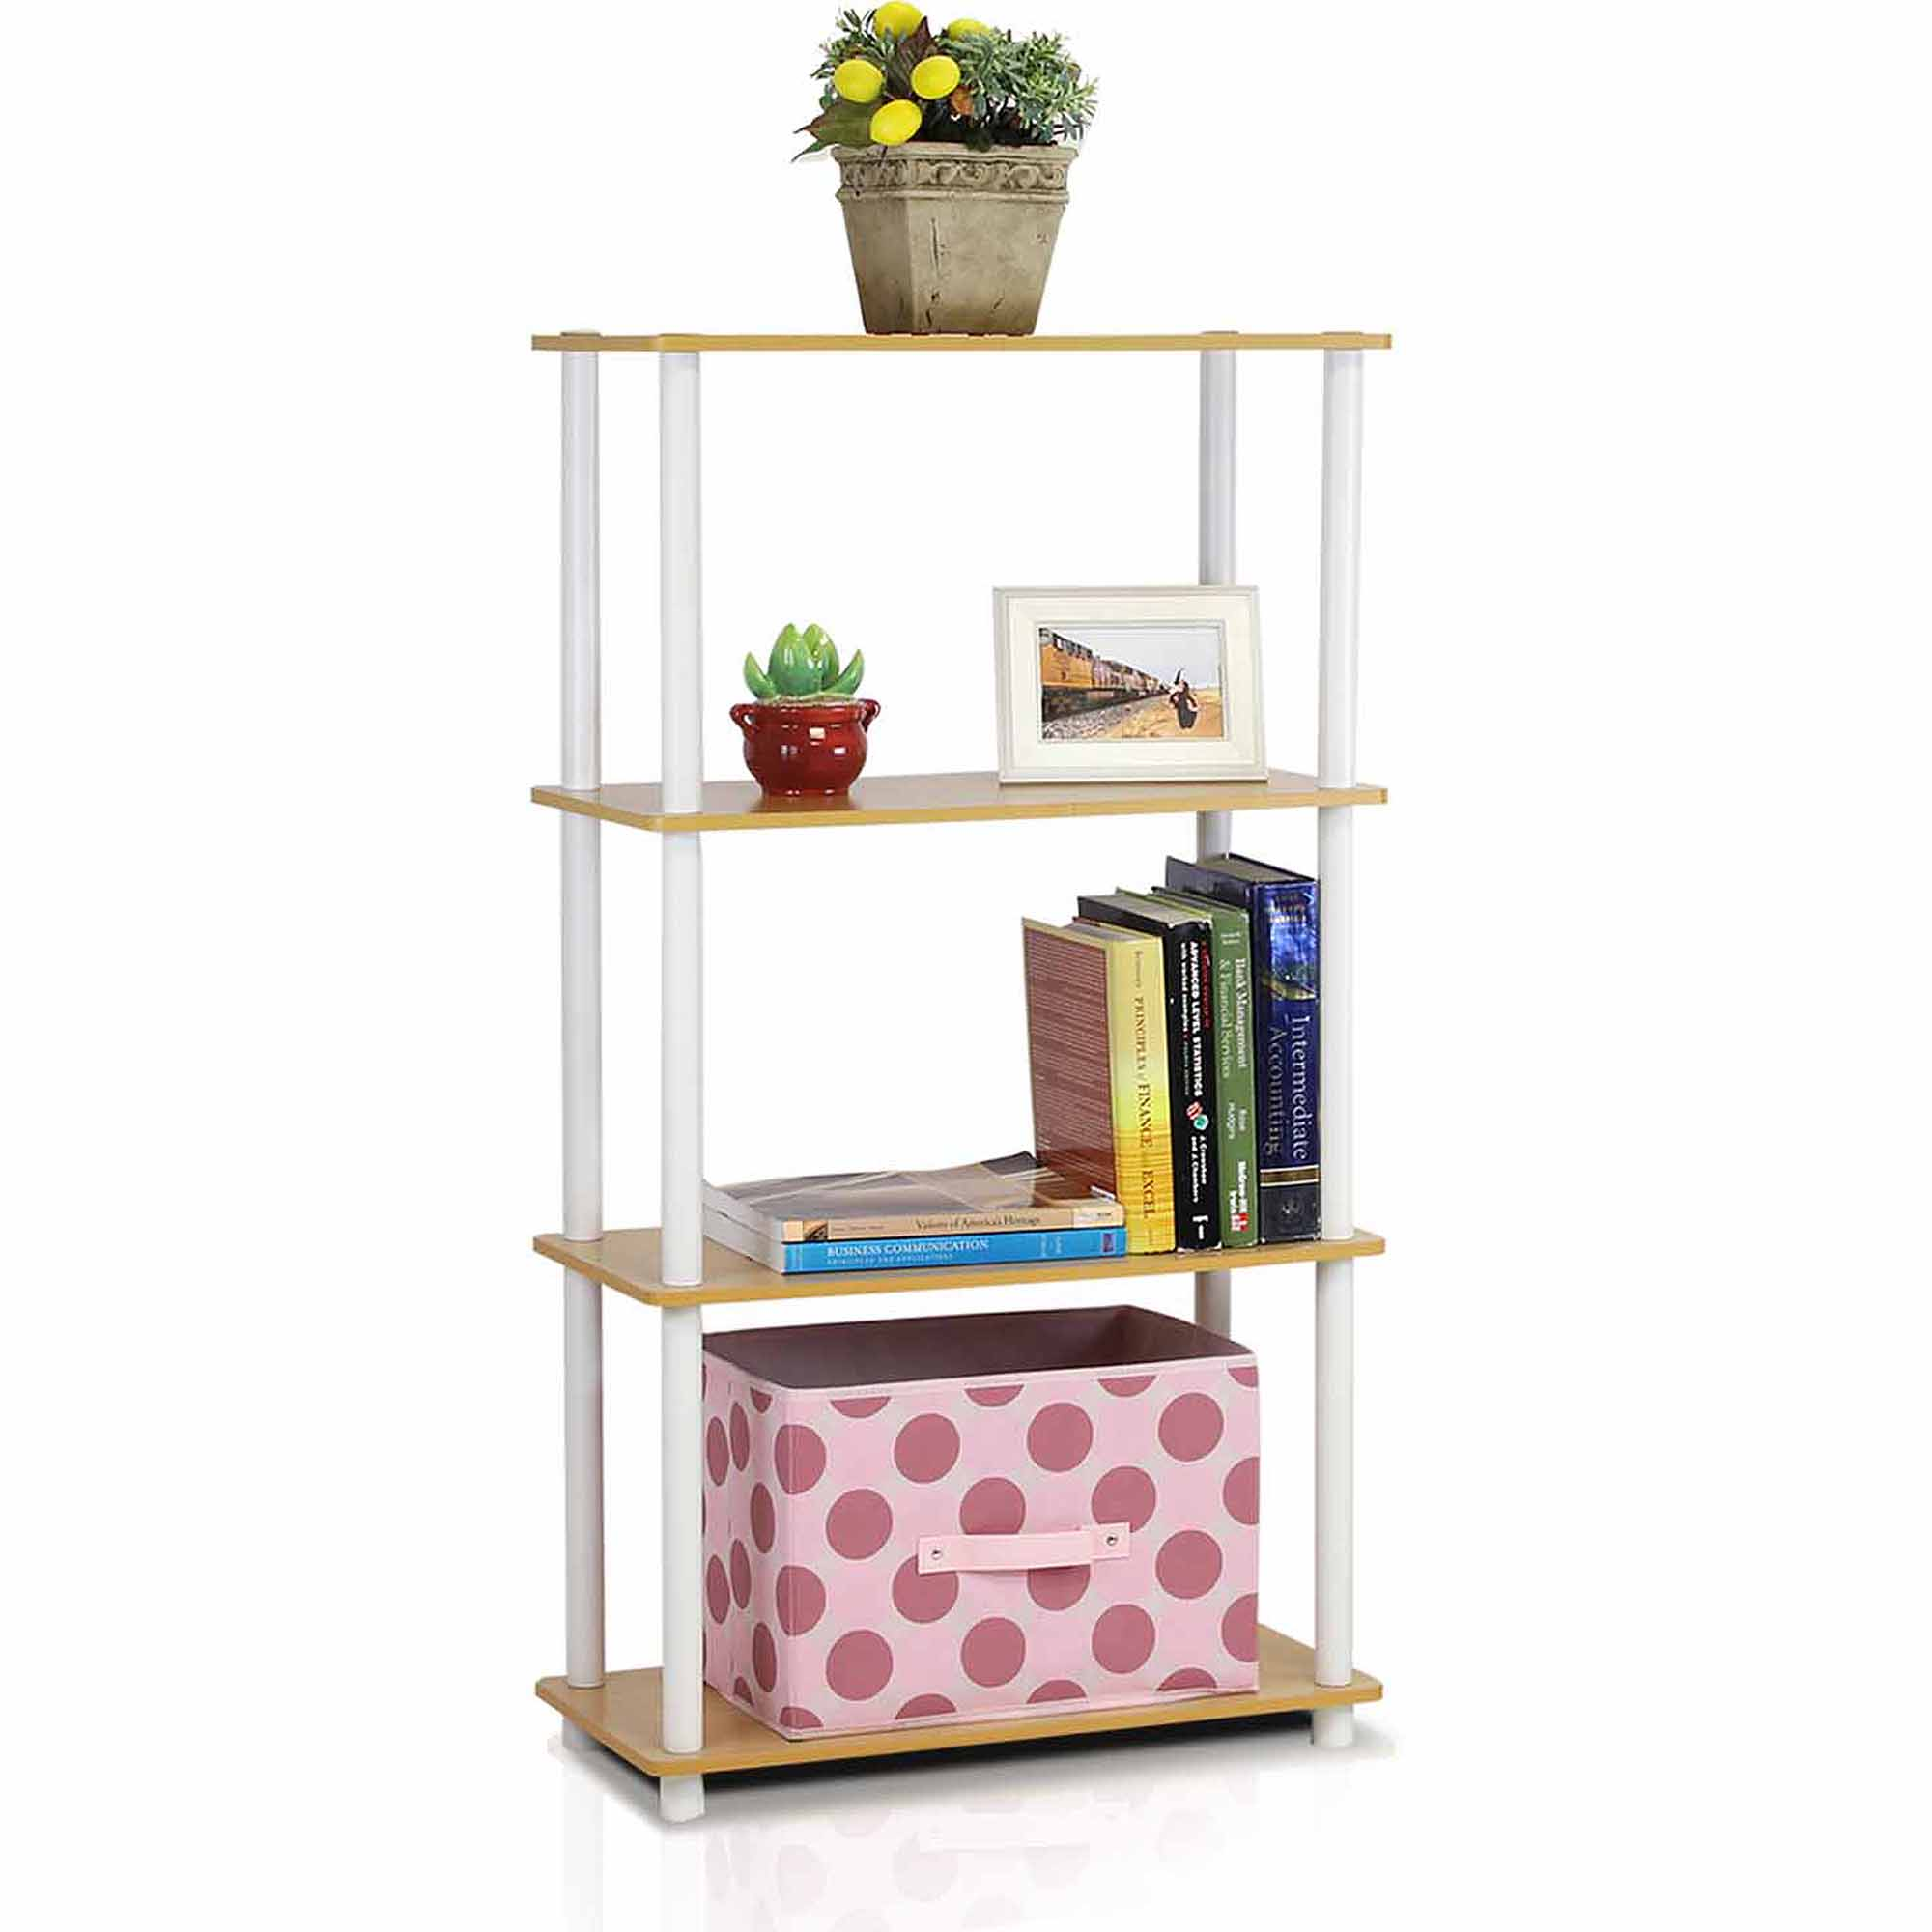 Furinno 99557 Turn-N-Tube 4-Tier No-Tools Multipurpose Shelf Display Rack